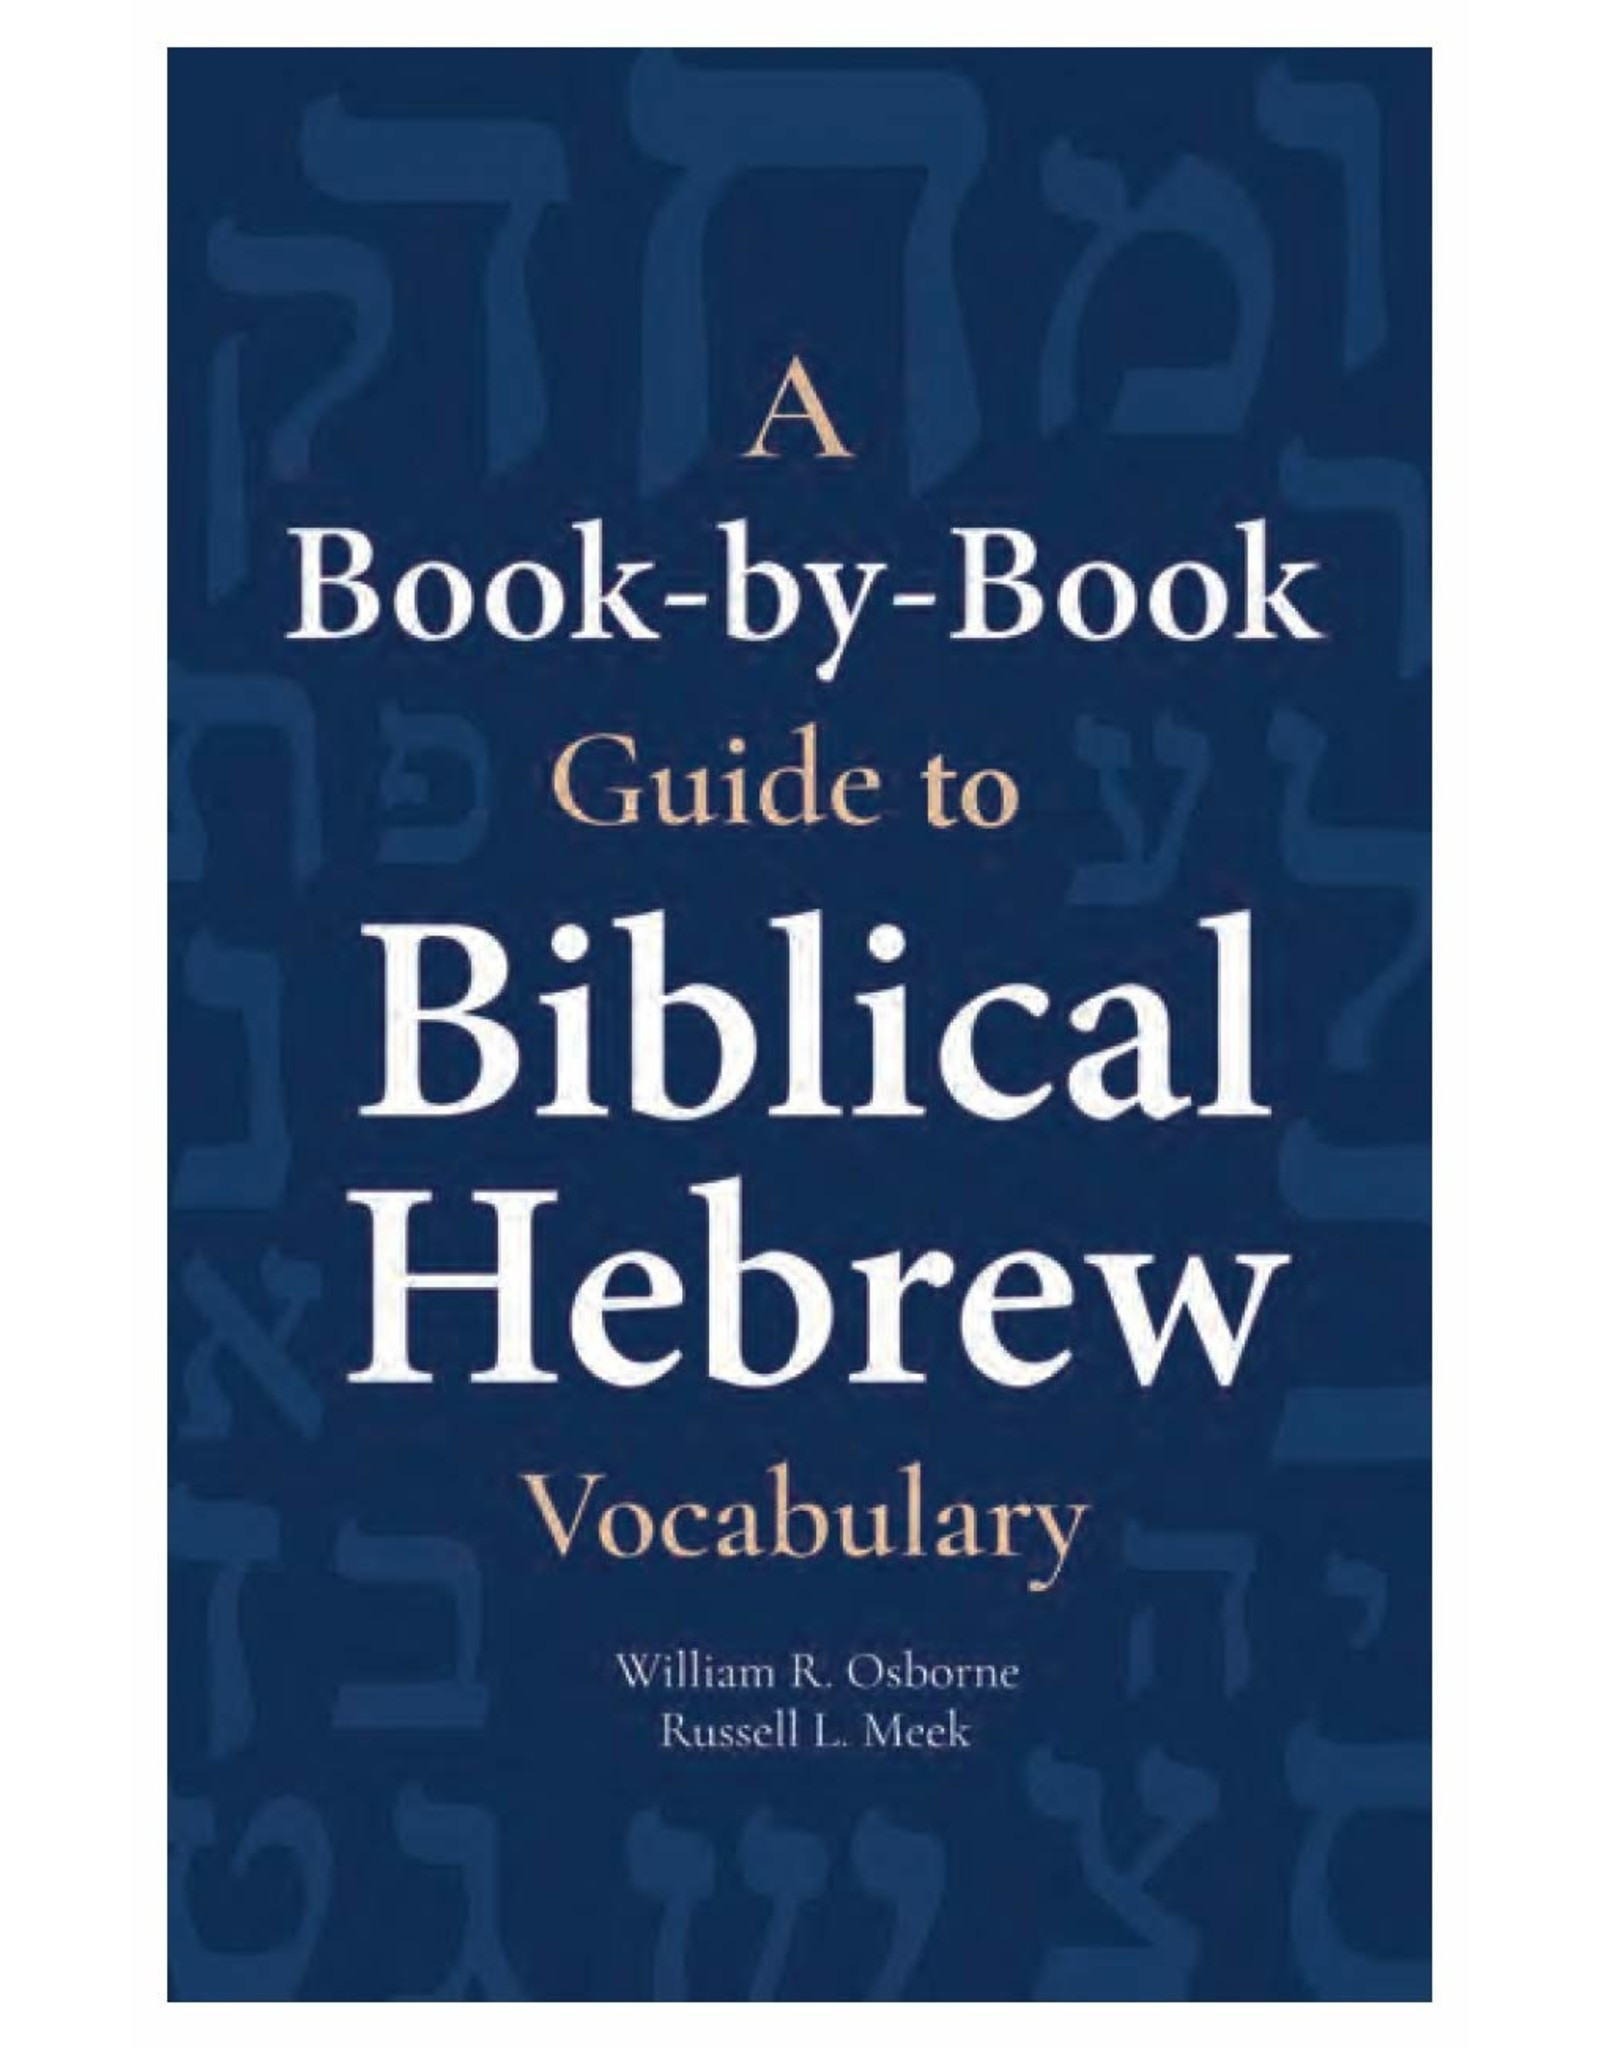 Hendrickson A Book-by-Book Guide to Biblical Hebrew Vocabulary